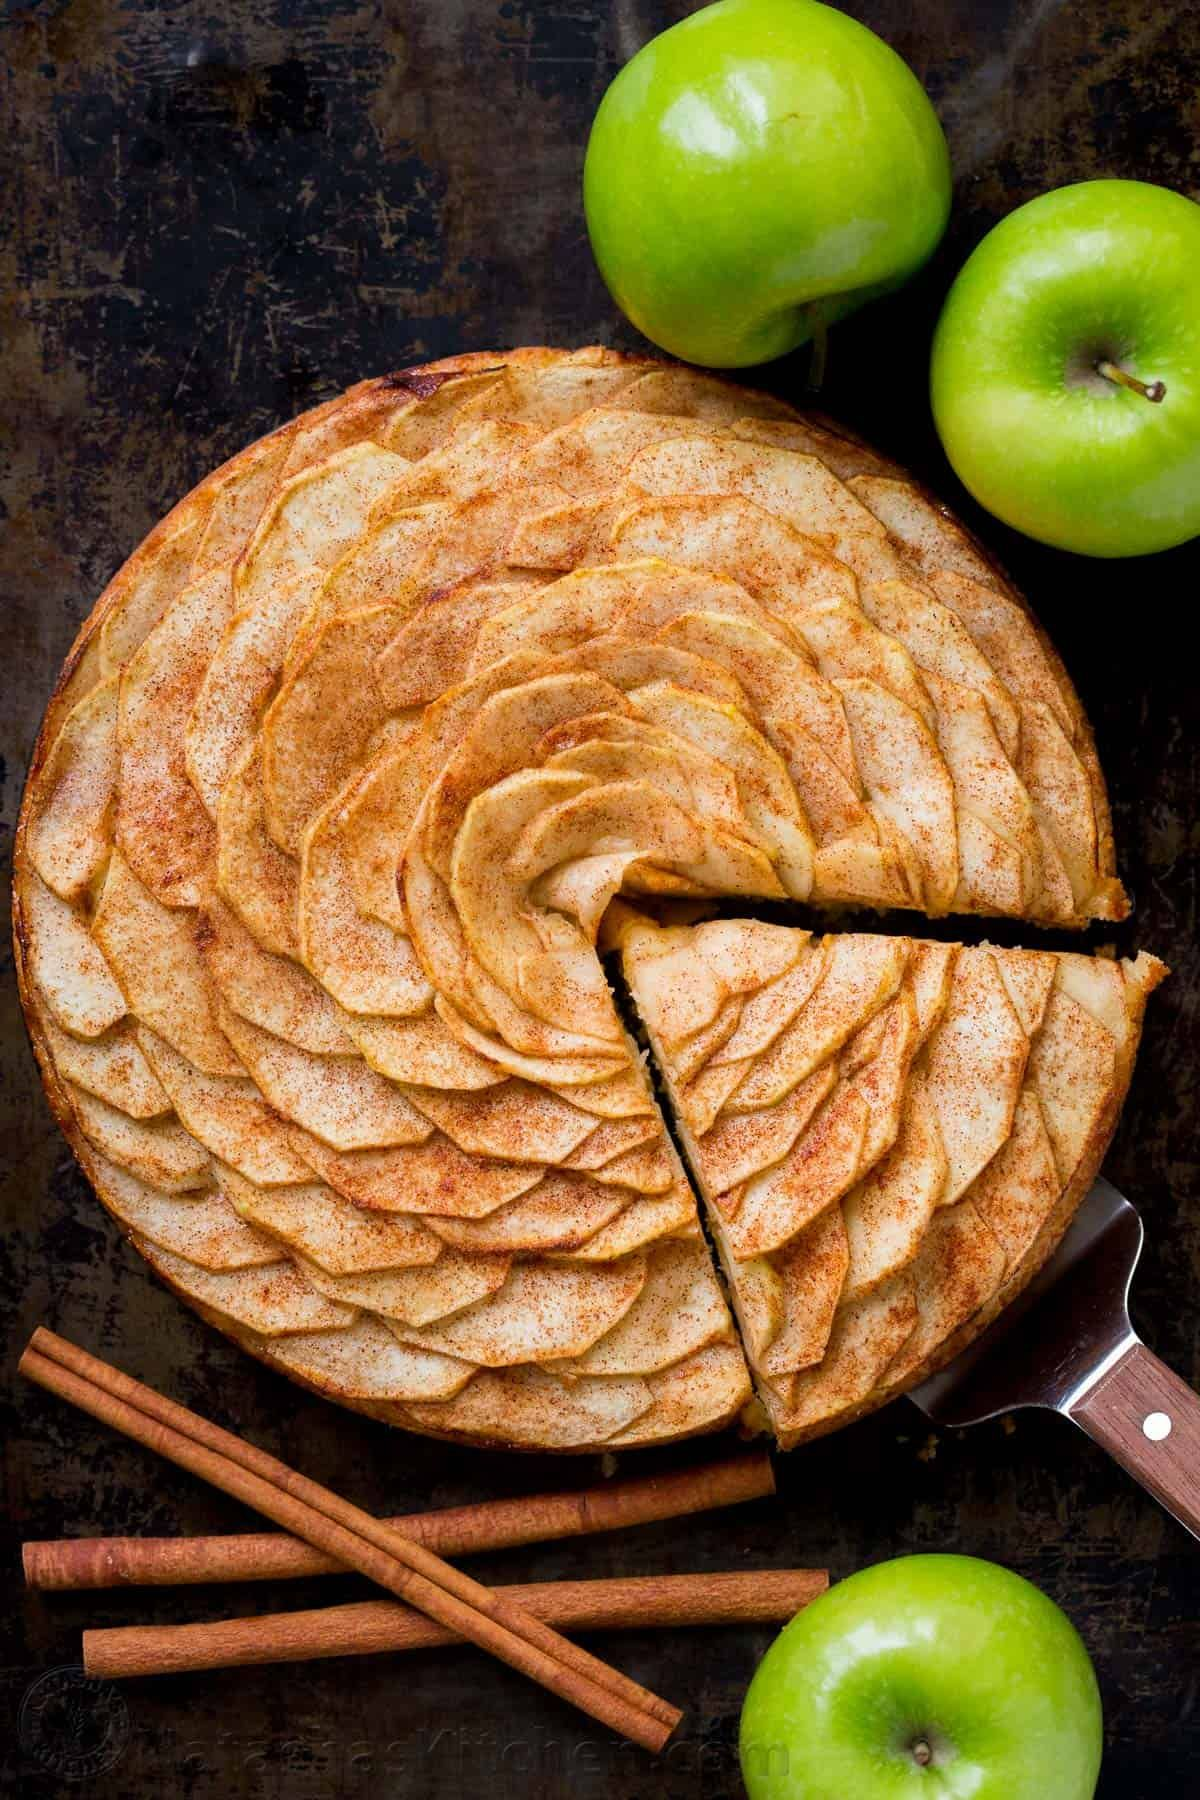 Apple Tart Recipe (Apple Rose Tart) - NatashasKitchen.com